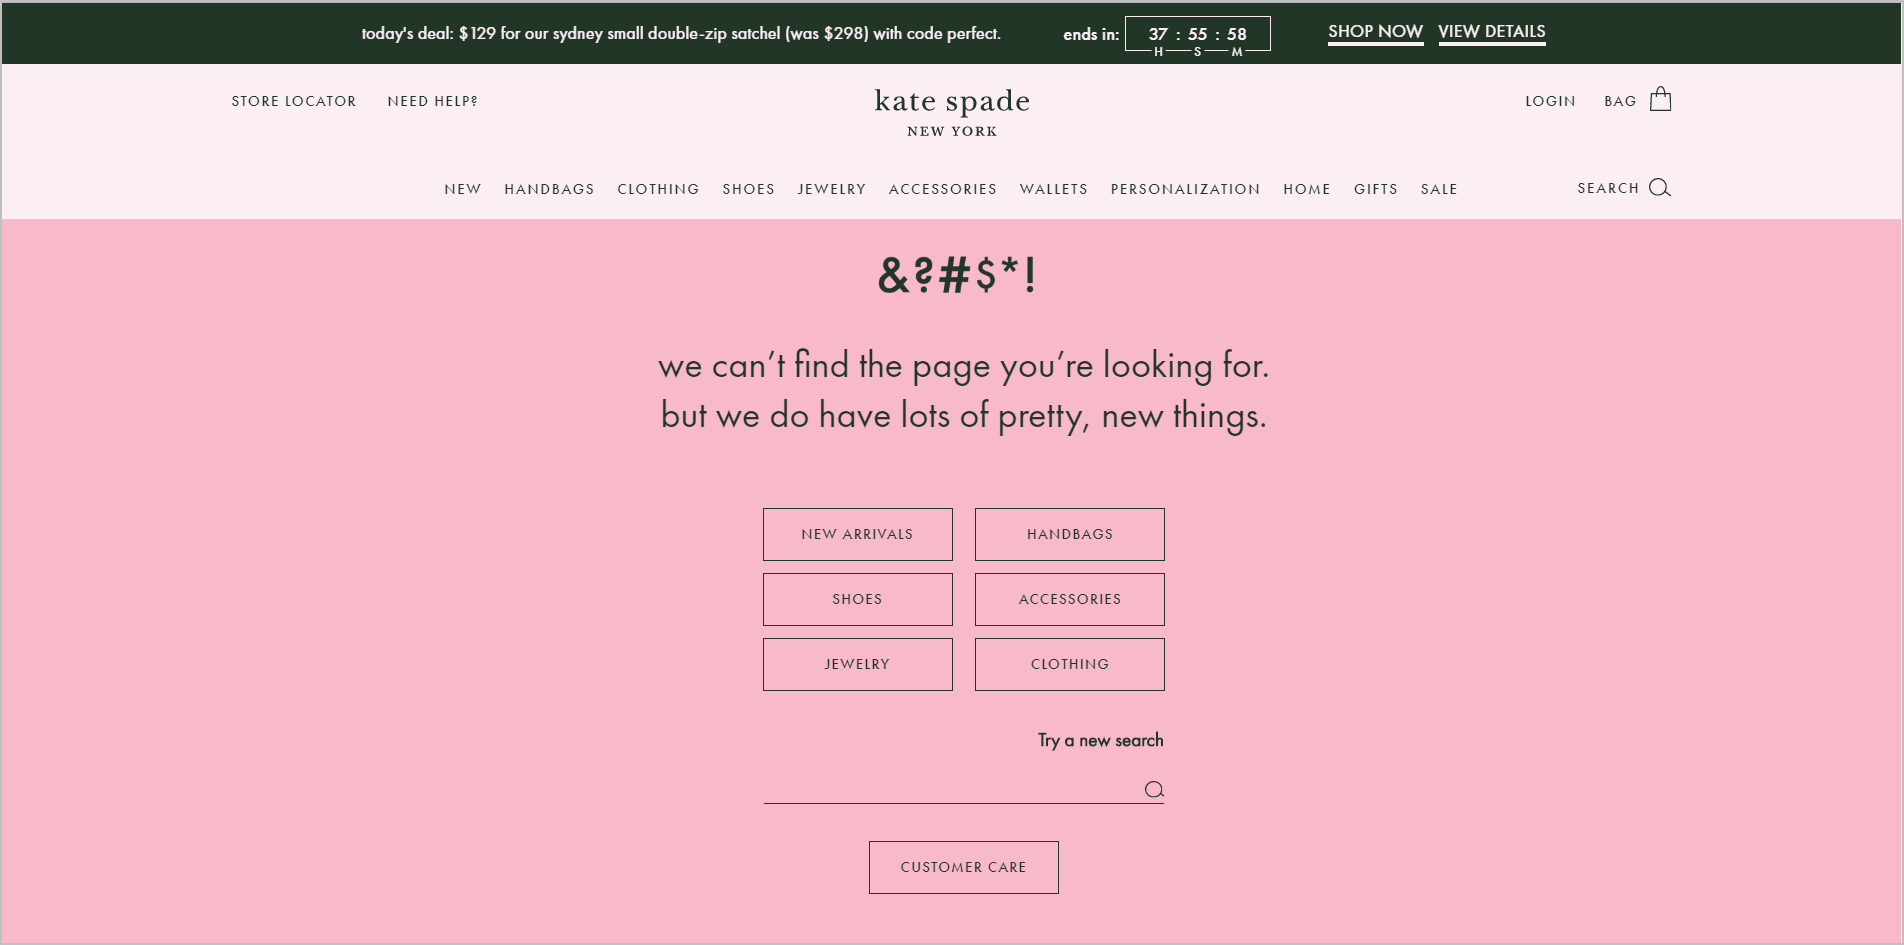 helpful ecommerce 404 page example - katespade.com's 404 error page says